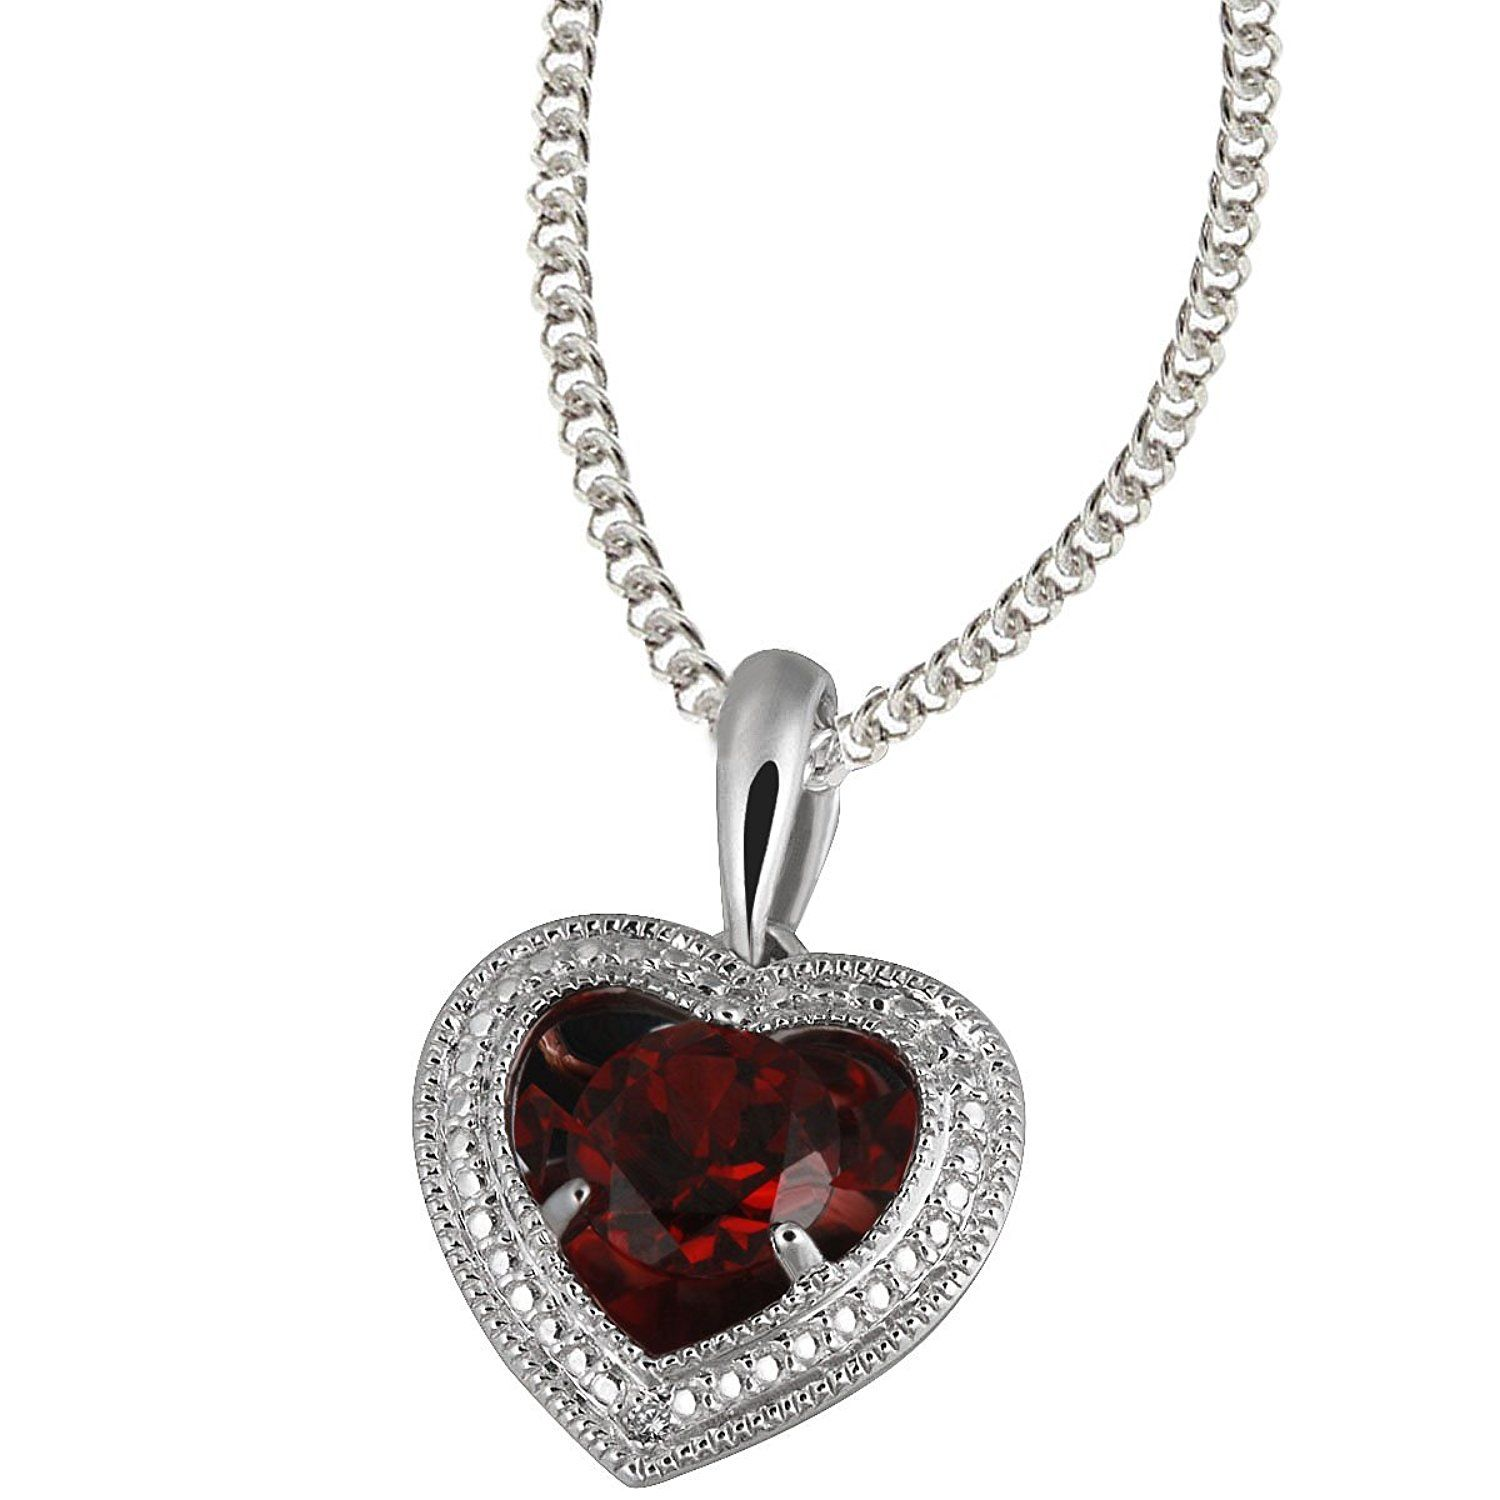 Goldmaid Women 925 Sterling Silver Cubic Zirconia Heart Necklace t2RSv7dD